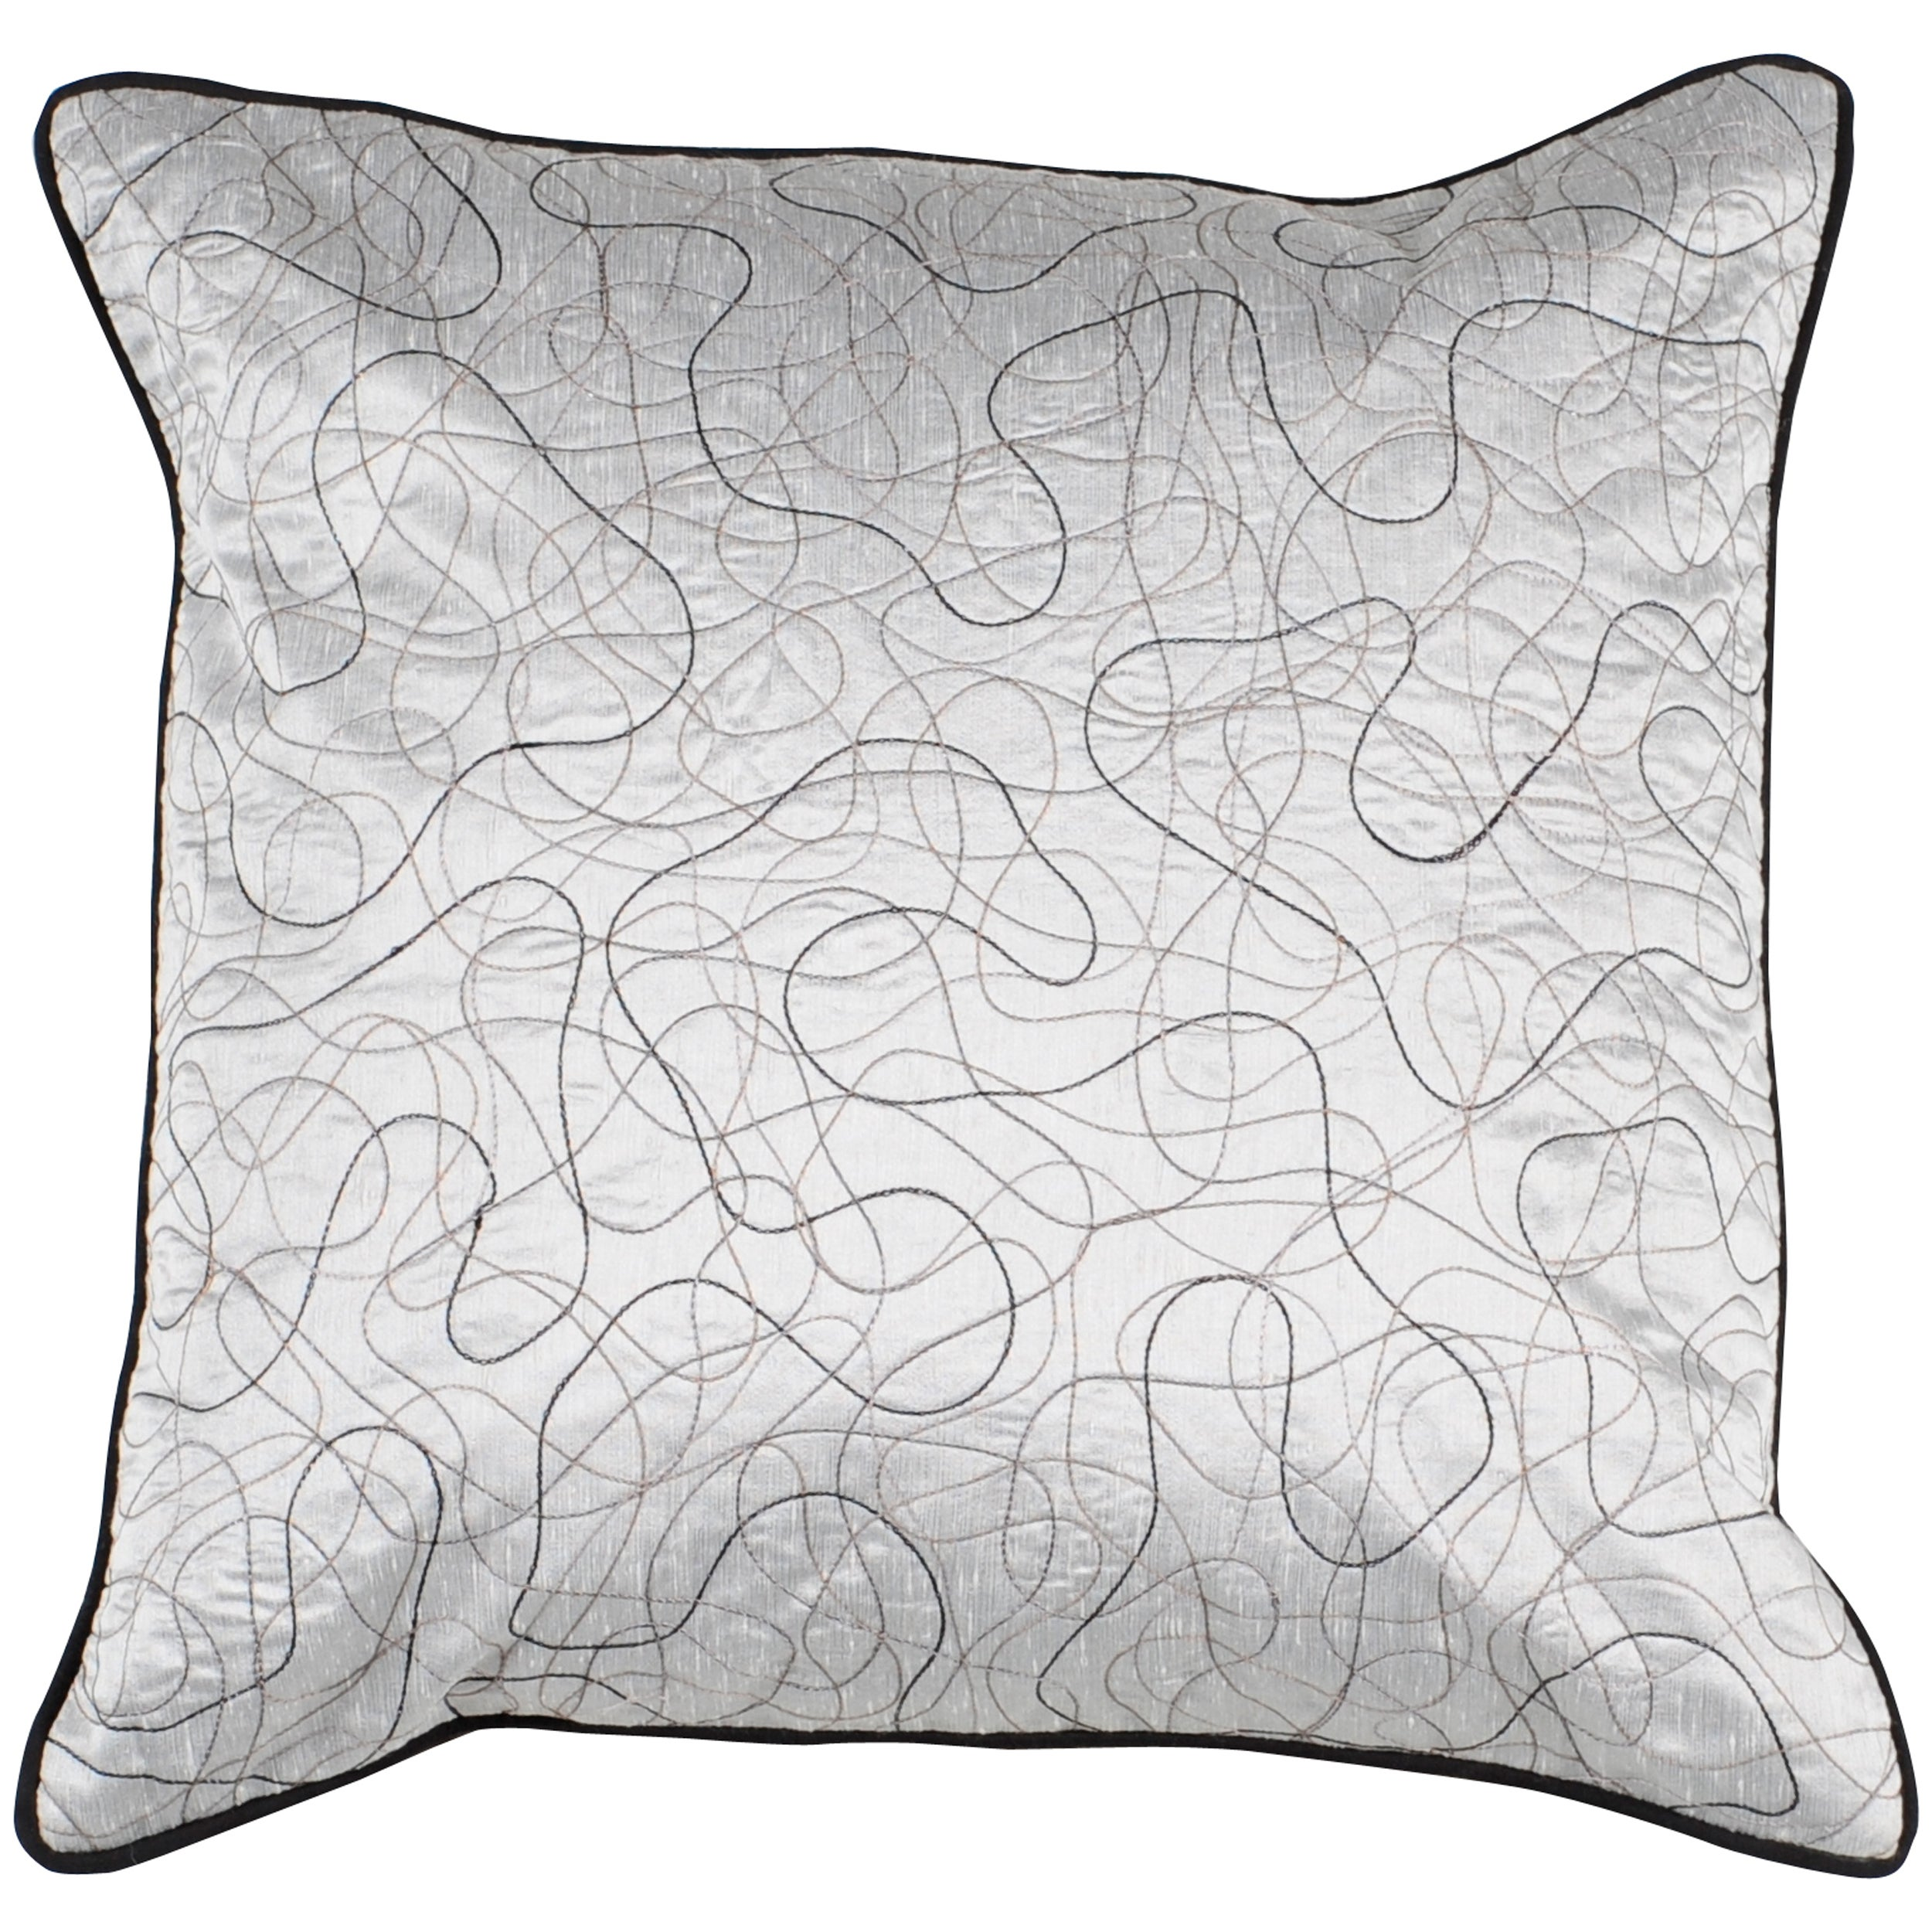 Decorative Topstitched Pro 18x18 Down Pillow